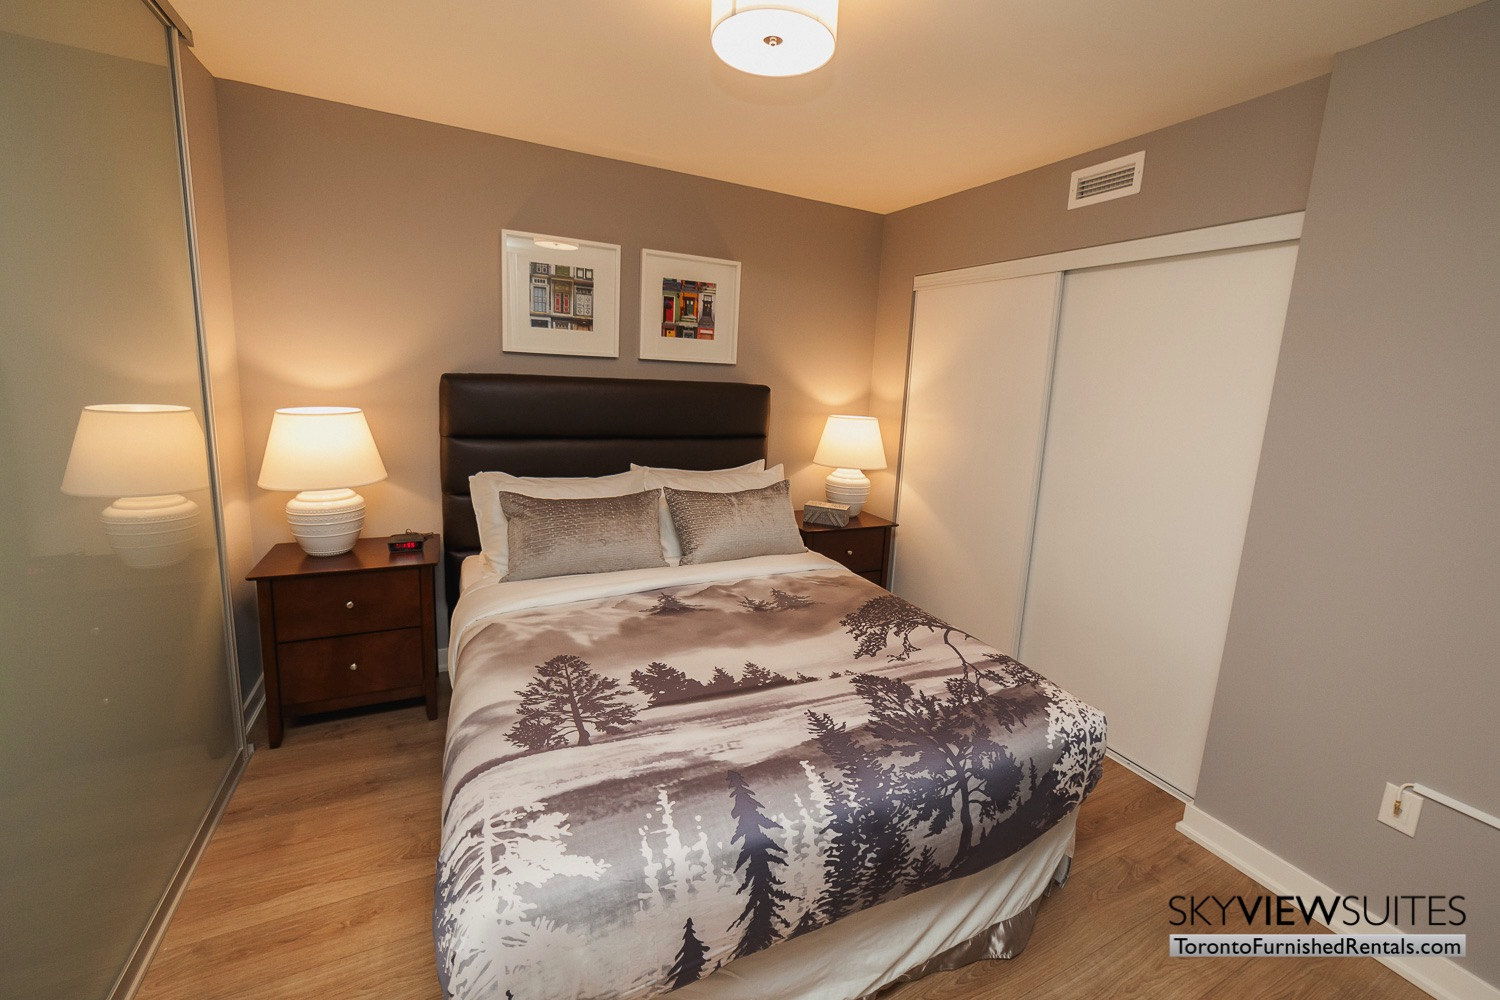 King west corporate rentals toronto bedroom